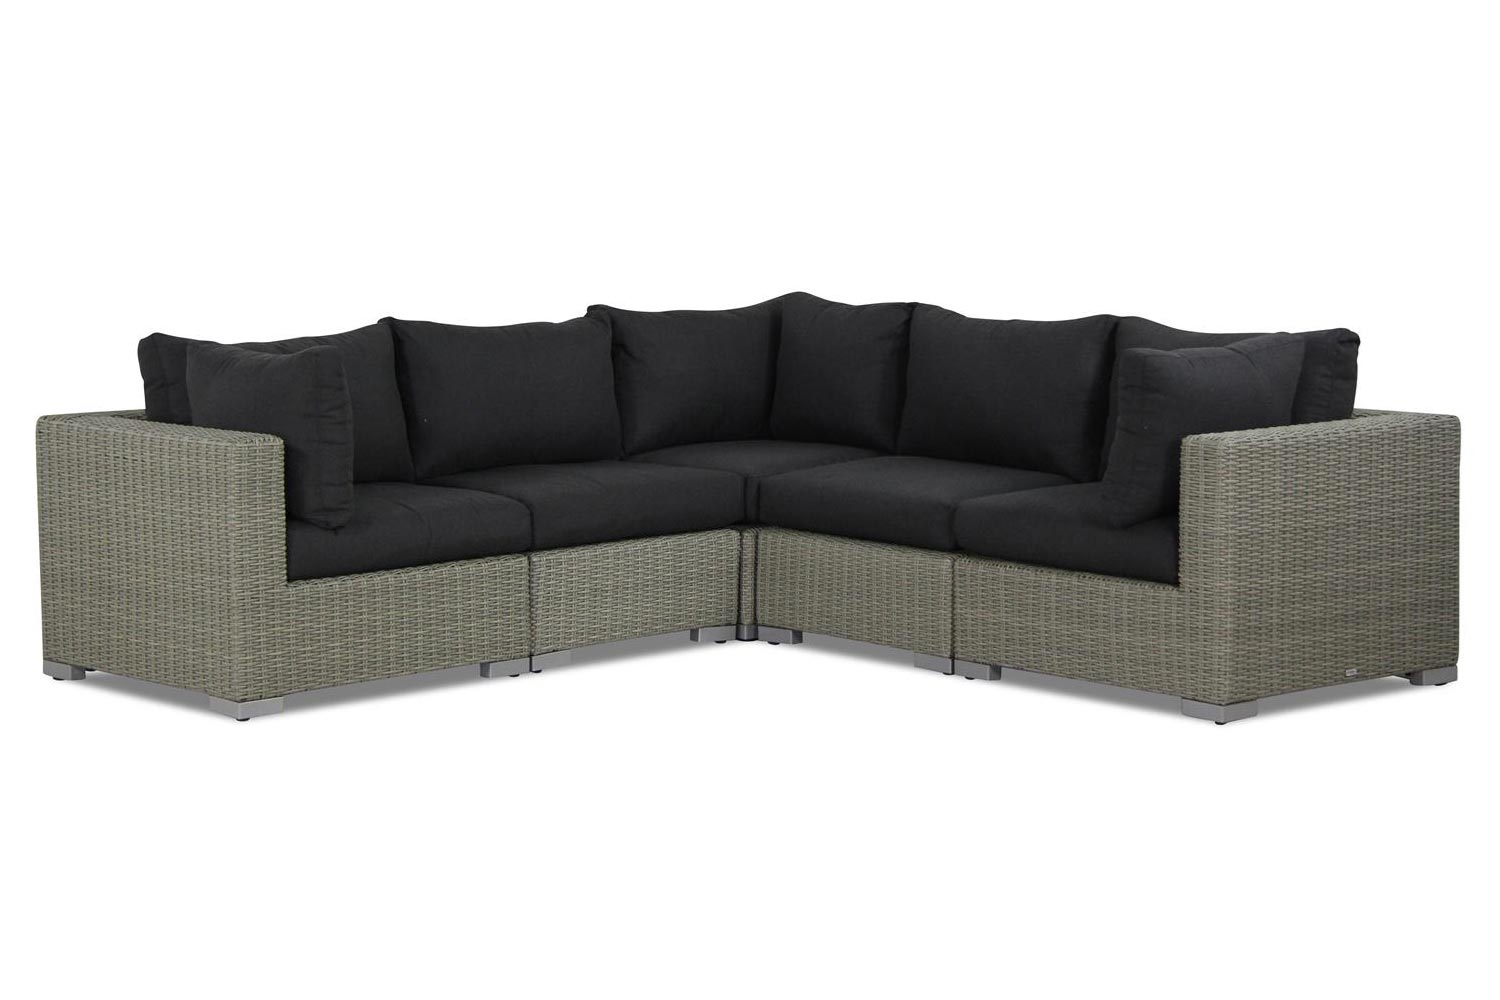 Garden Collections Toronto hoek loungeset 5-delig